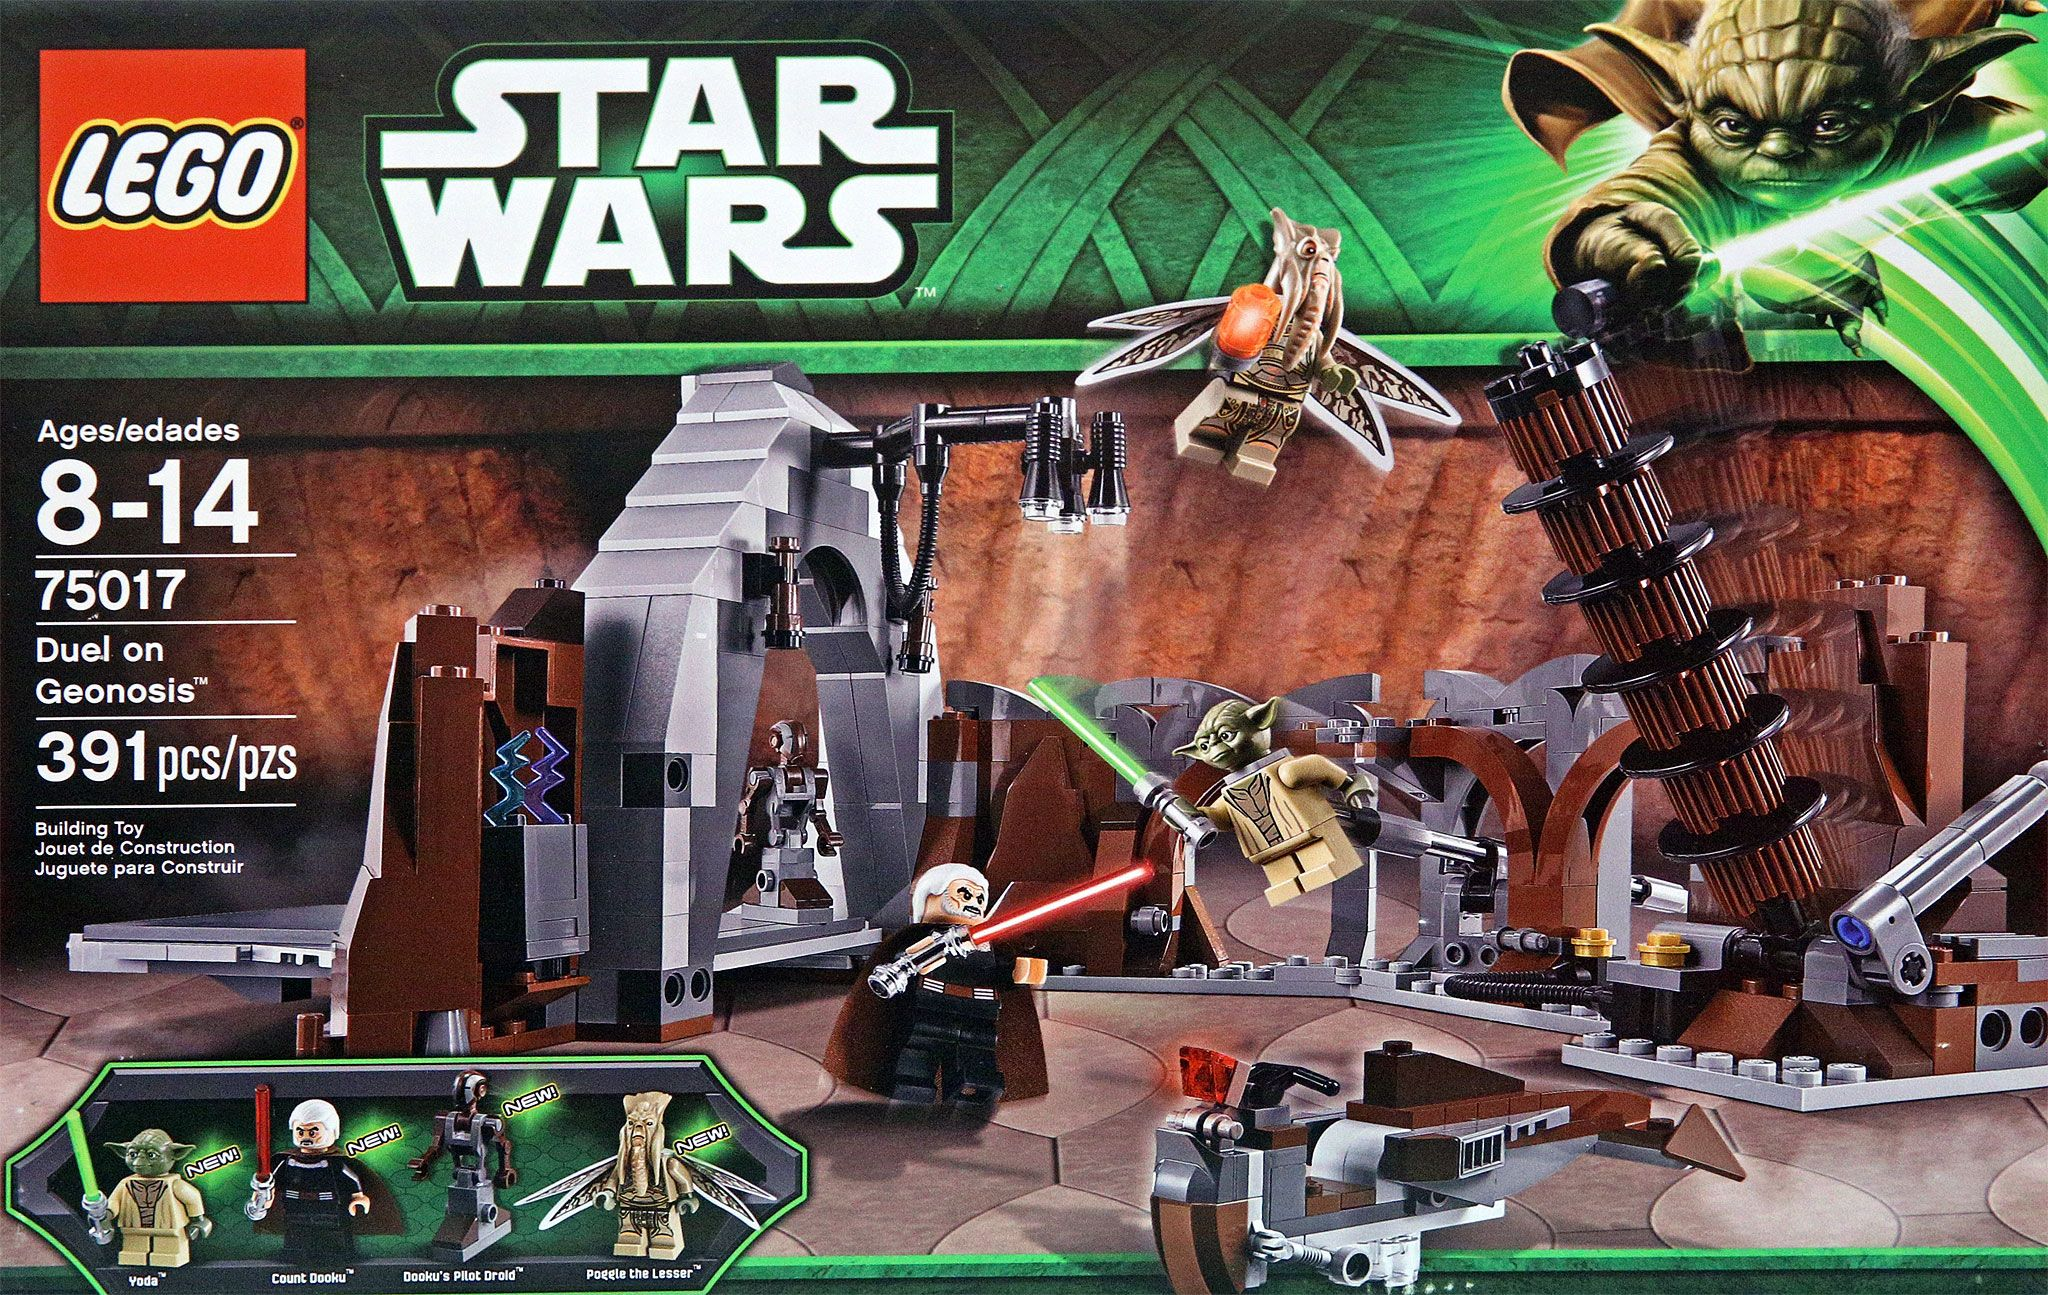 75017 Lego Duel On Geonosis